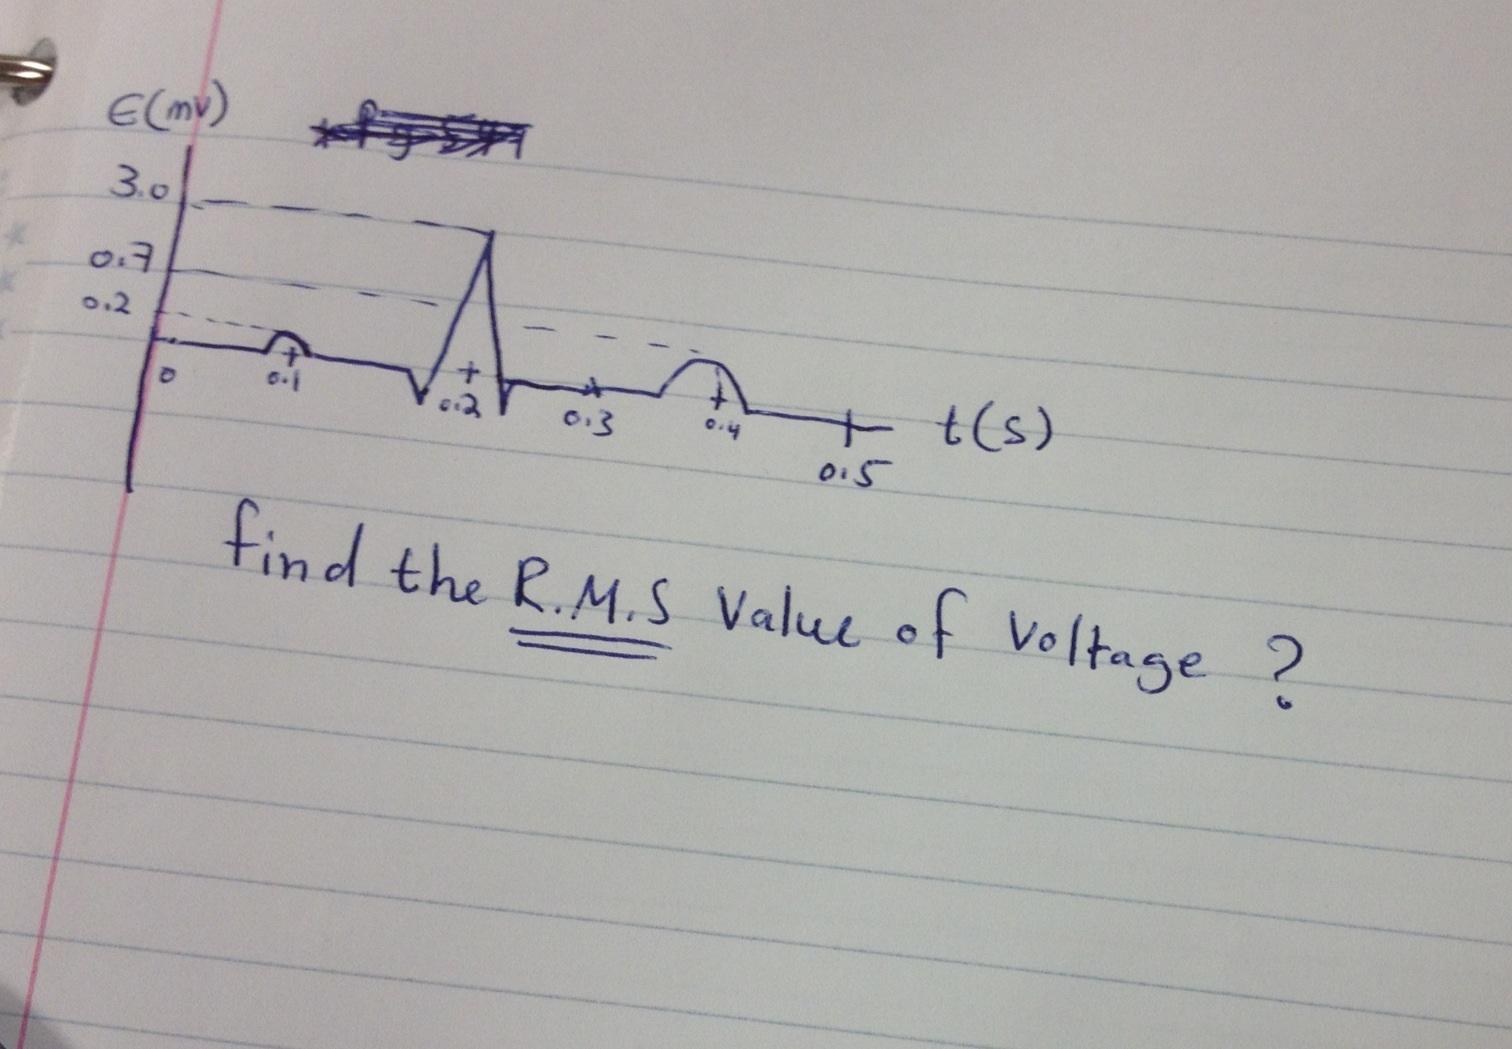 Find the R.M.S value of voltage ?